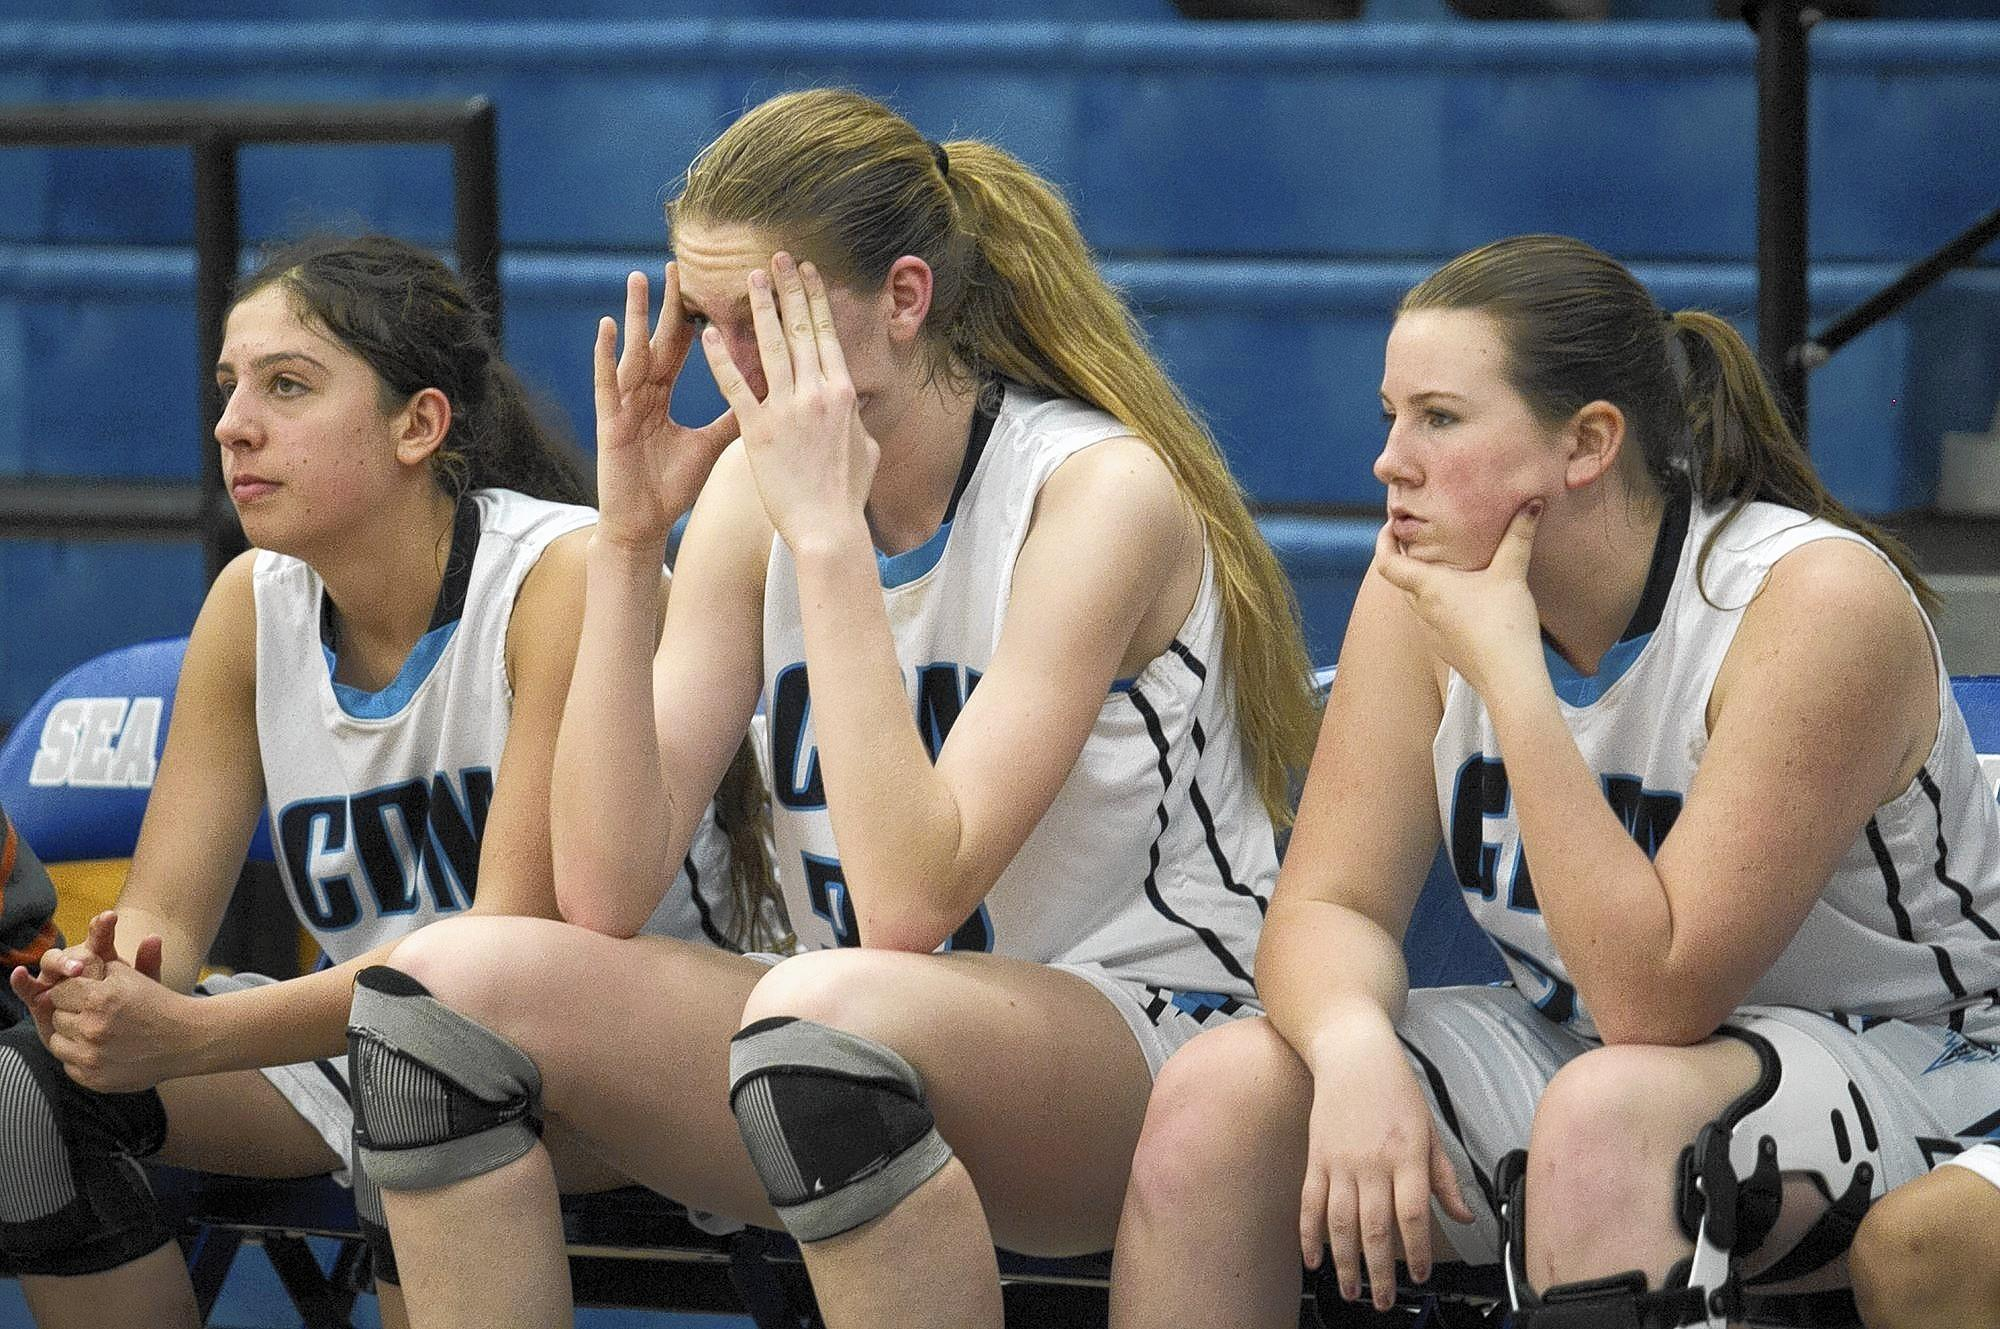 Corona del Mar High's Chanel Wosoughkia, left, Natalia Bruening, center, and Alexa Pridemore watch as the final seconds wind down in a 53-48 loss to Garfield during the CIF State SoCal Regional Division III playoffs on Wednesday.